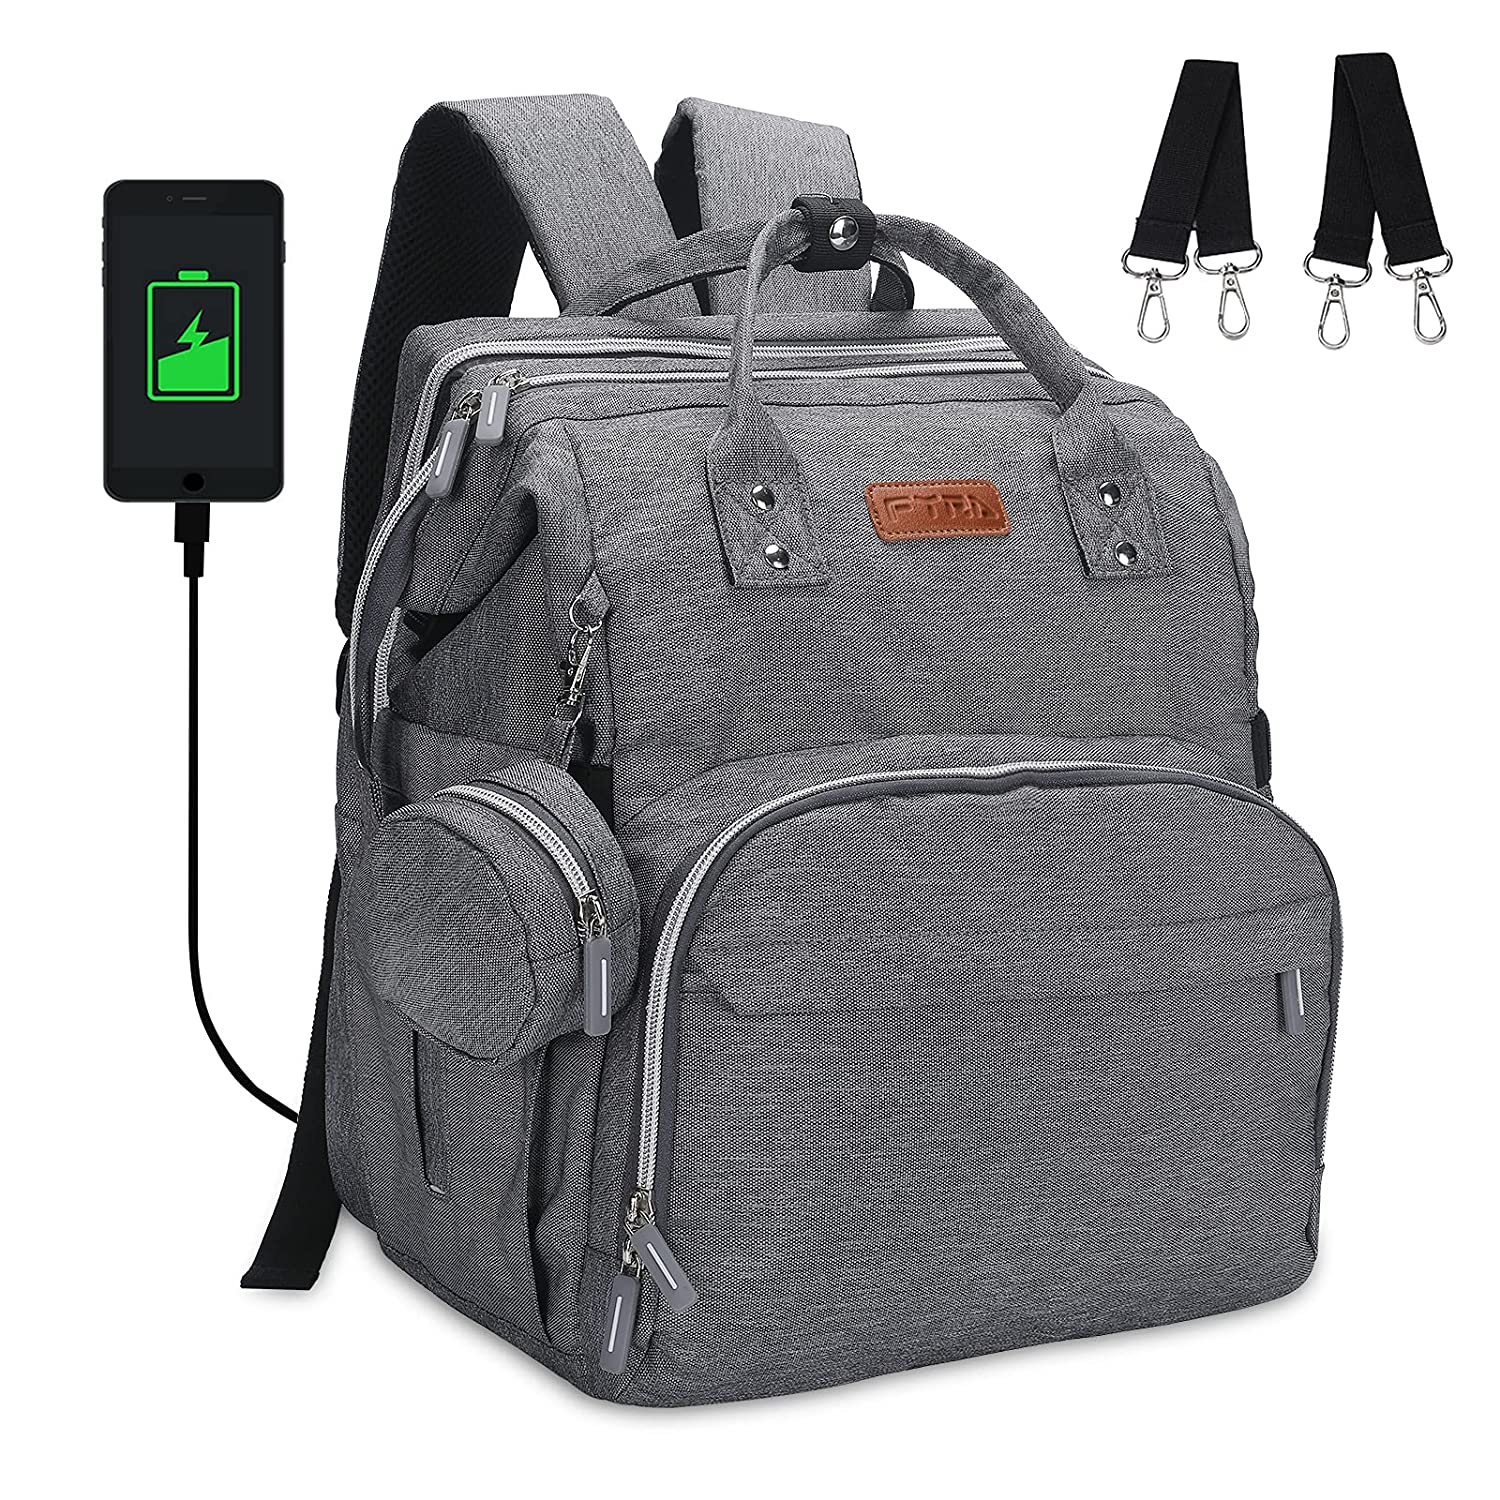 Diaper Bag Backpack, Large Capacity Multifunction Diaper Bags, Diaper Backpack with Durable and Stylish for Moms Dads, Travel Back Pack with Fast Bottle Warmer Bag and Built-in USB Charging Port